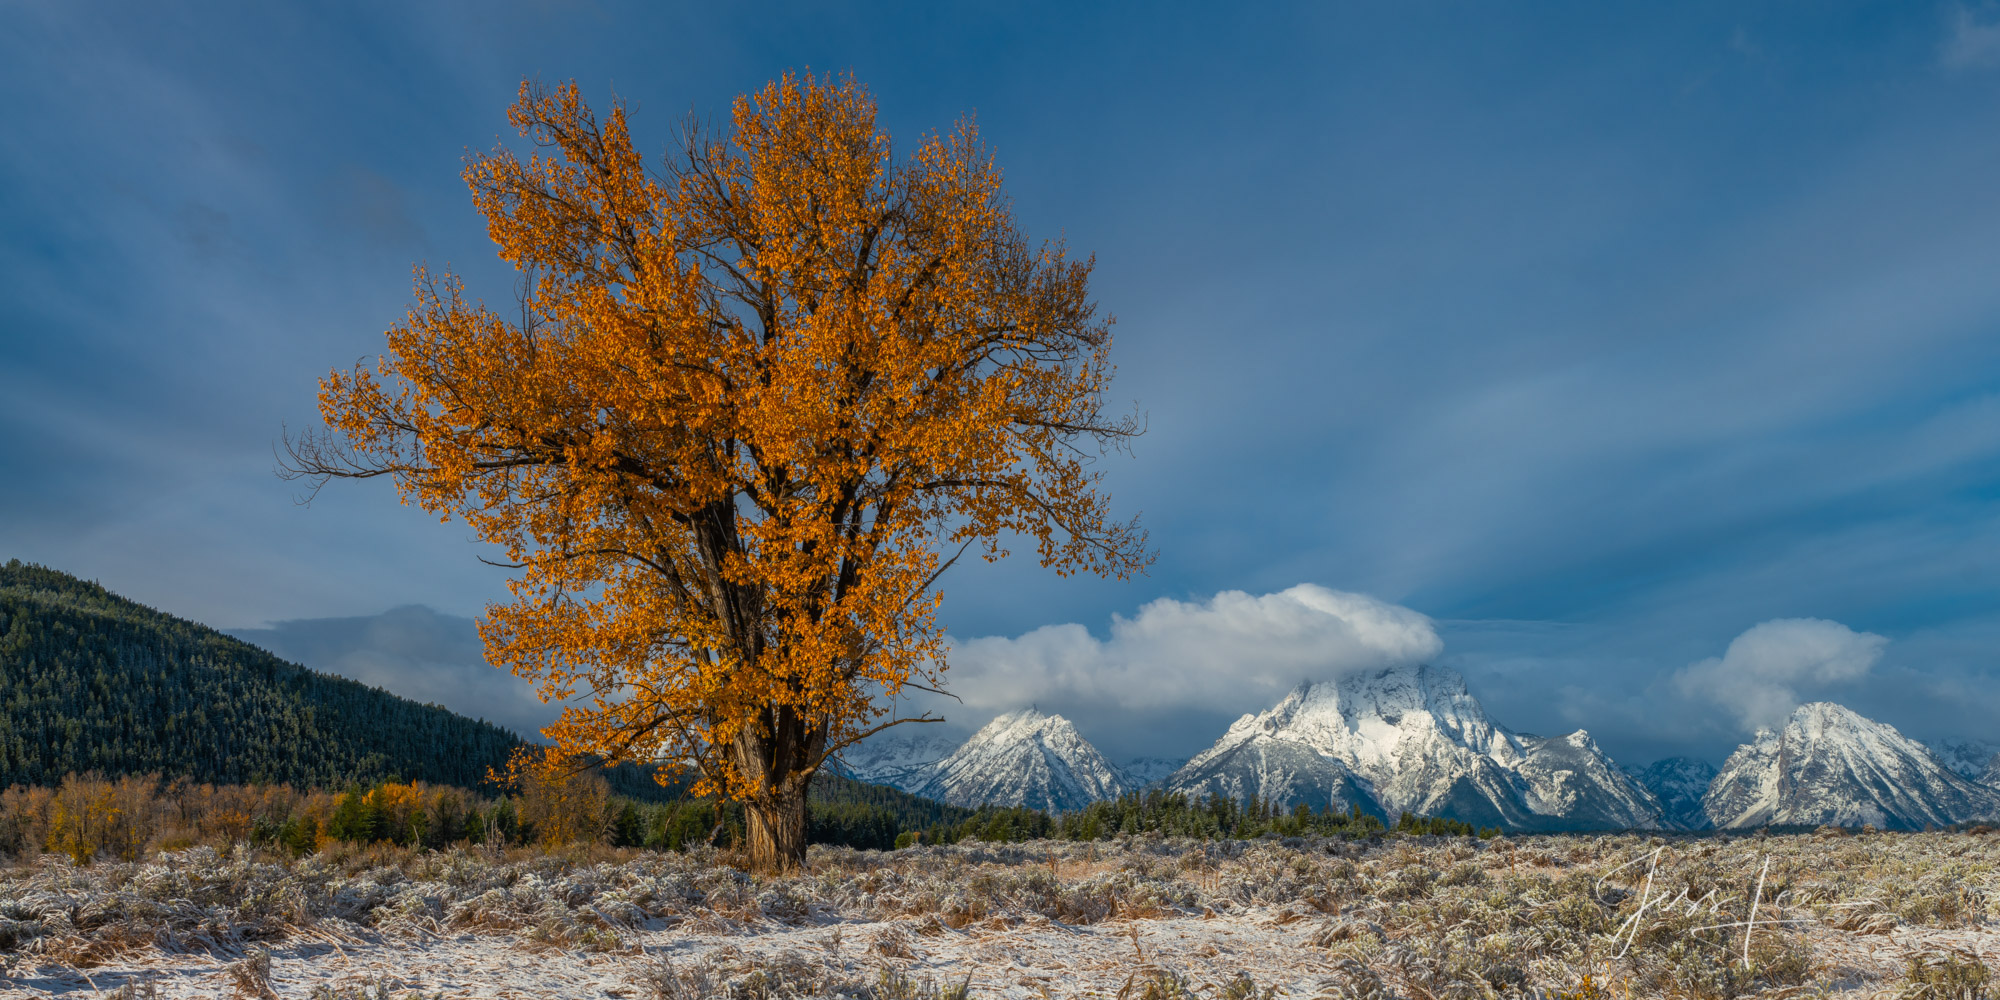 Photo, Teton, tree, autumn, color, cottonwood, Mt Moran, Panorama, mountain, Prints, fine art, luxury, limited edition,, photo